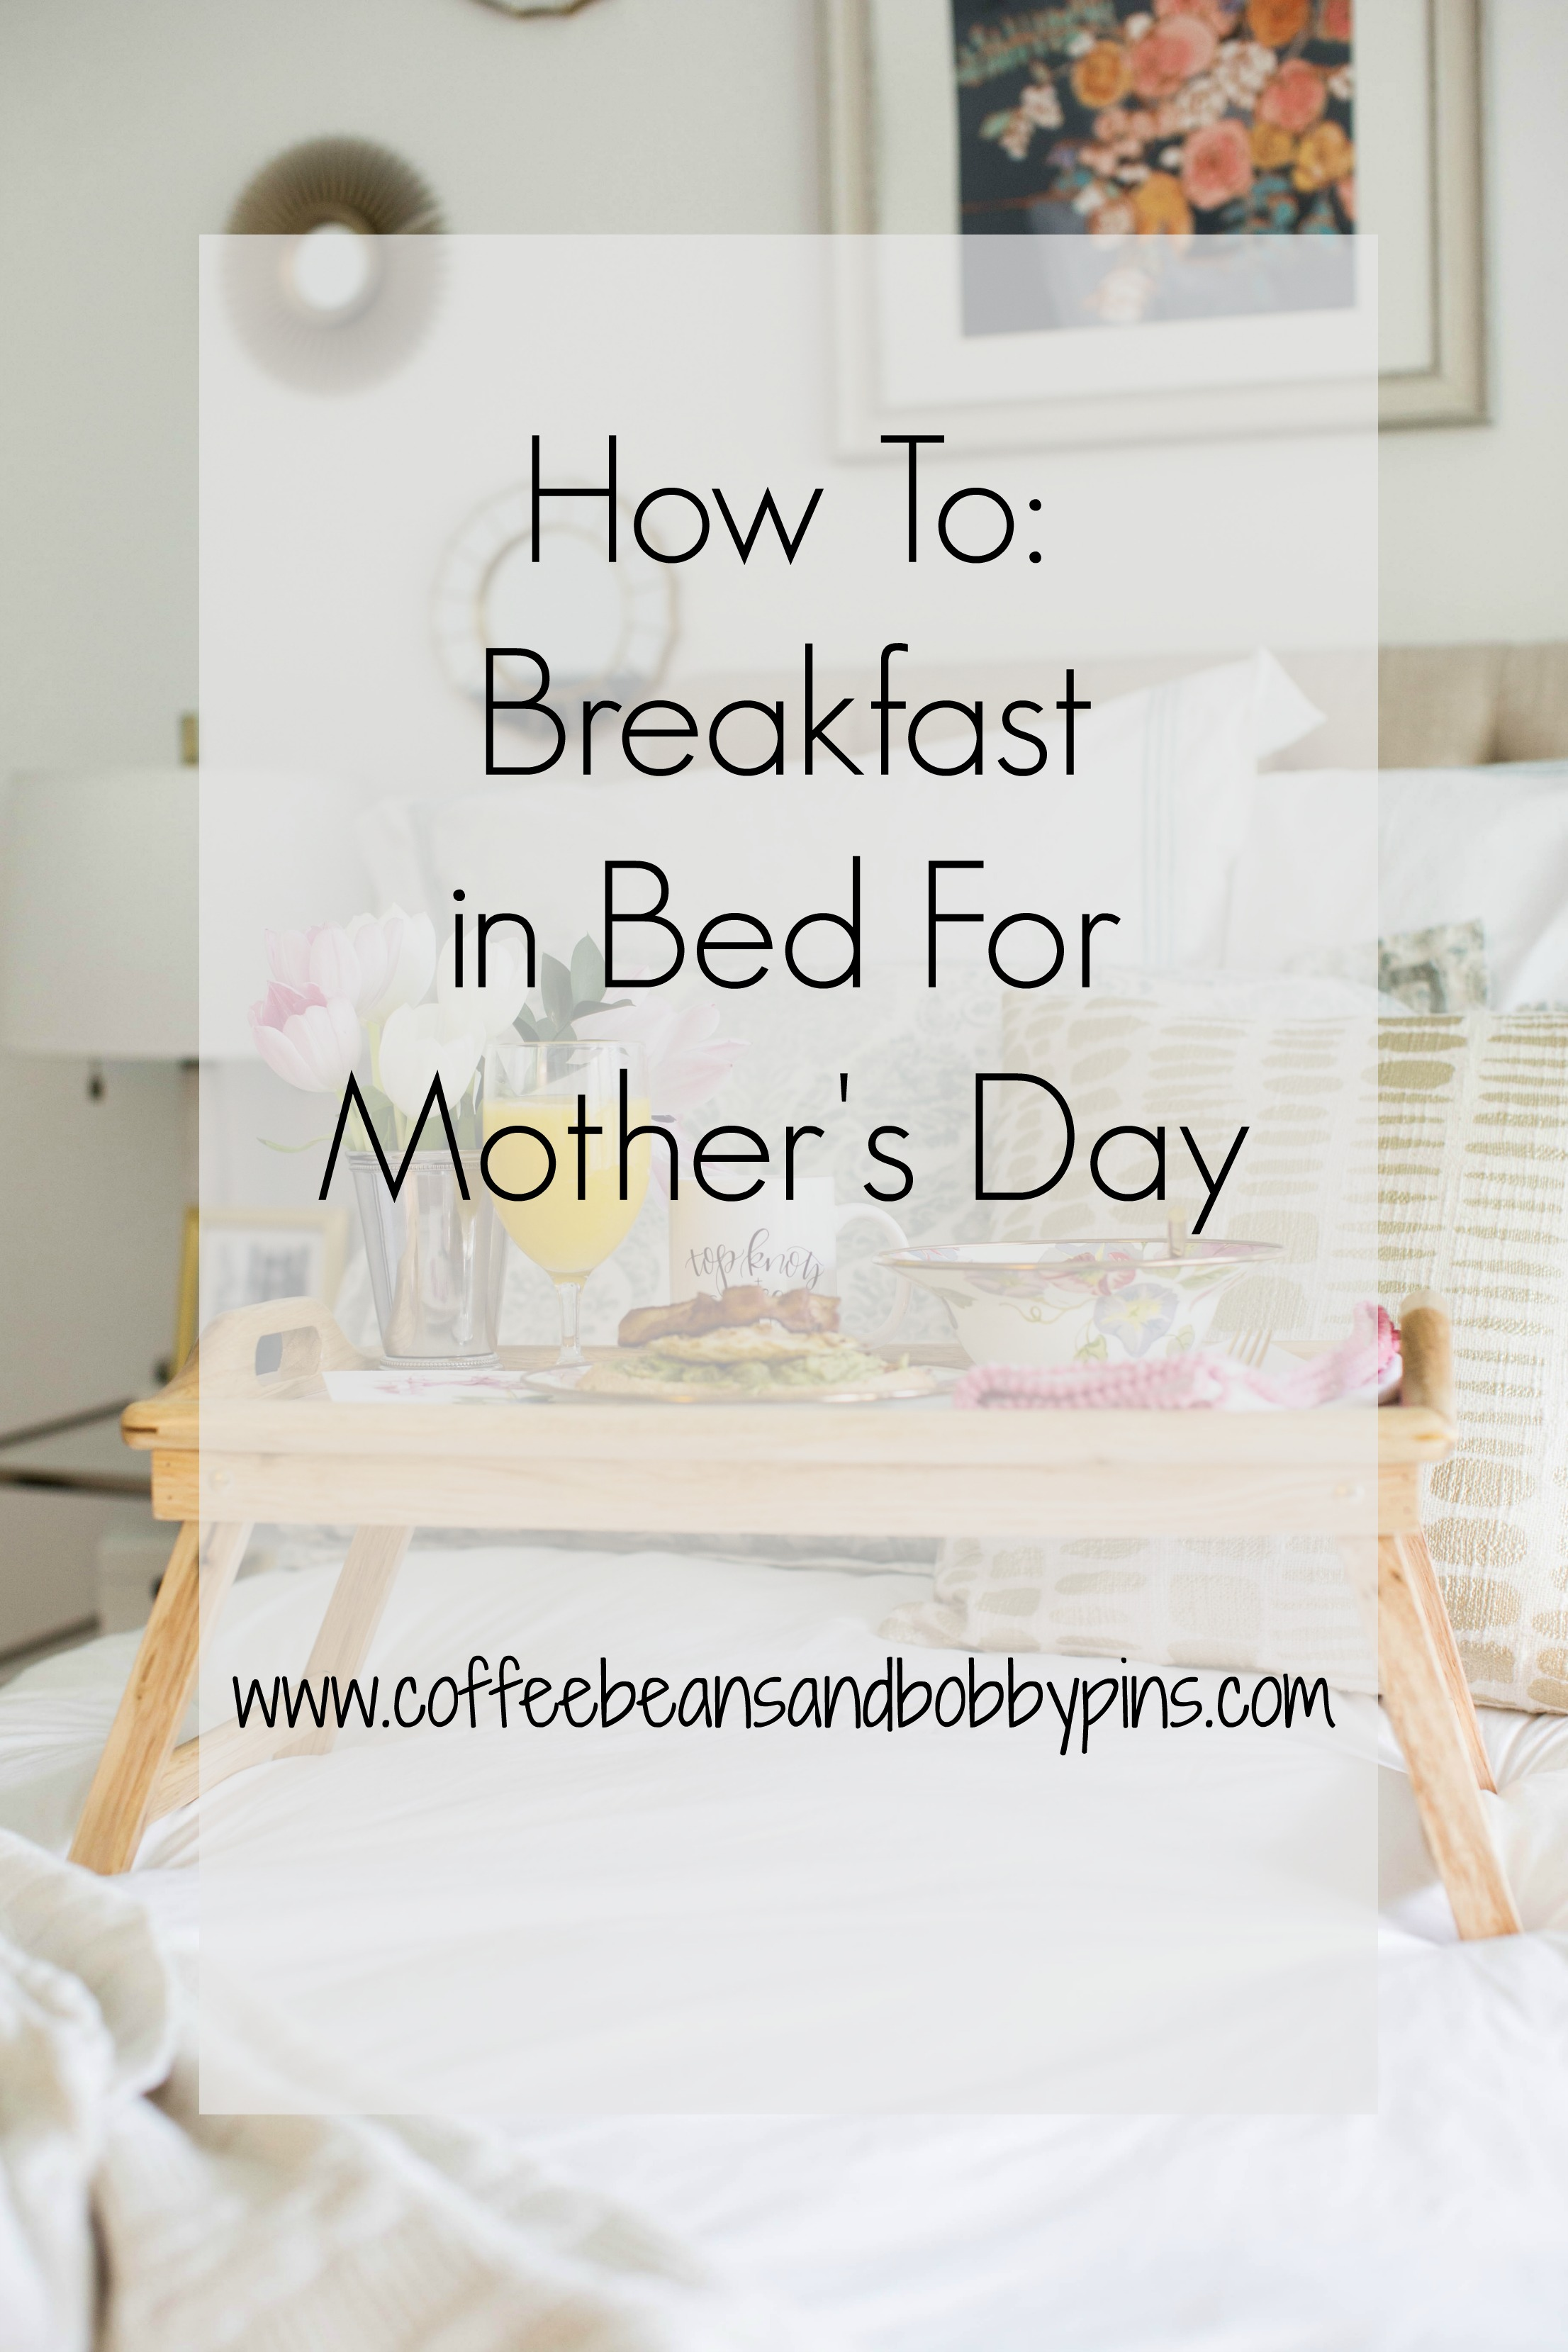 How To: Breakfast in Bed For Mother's Day